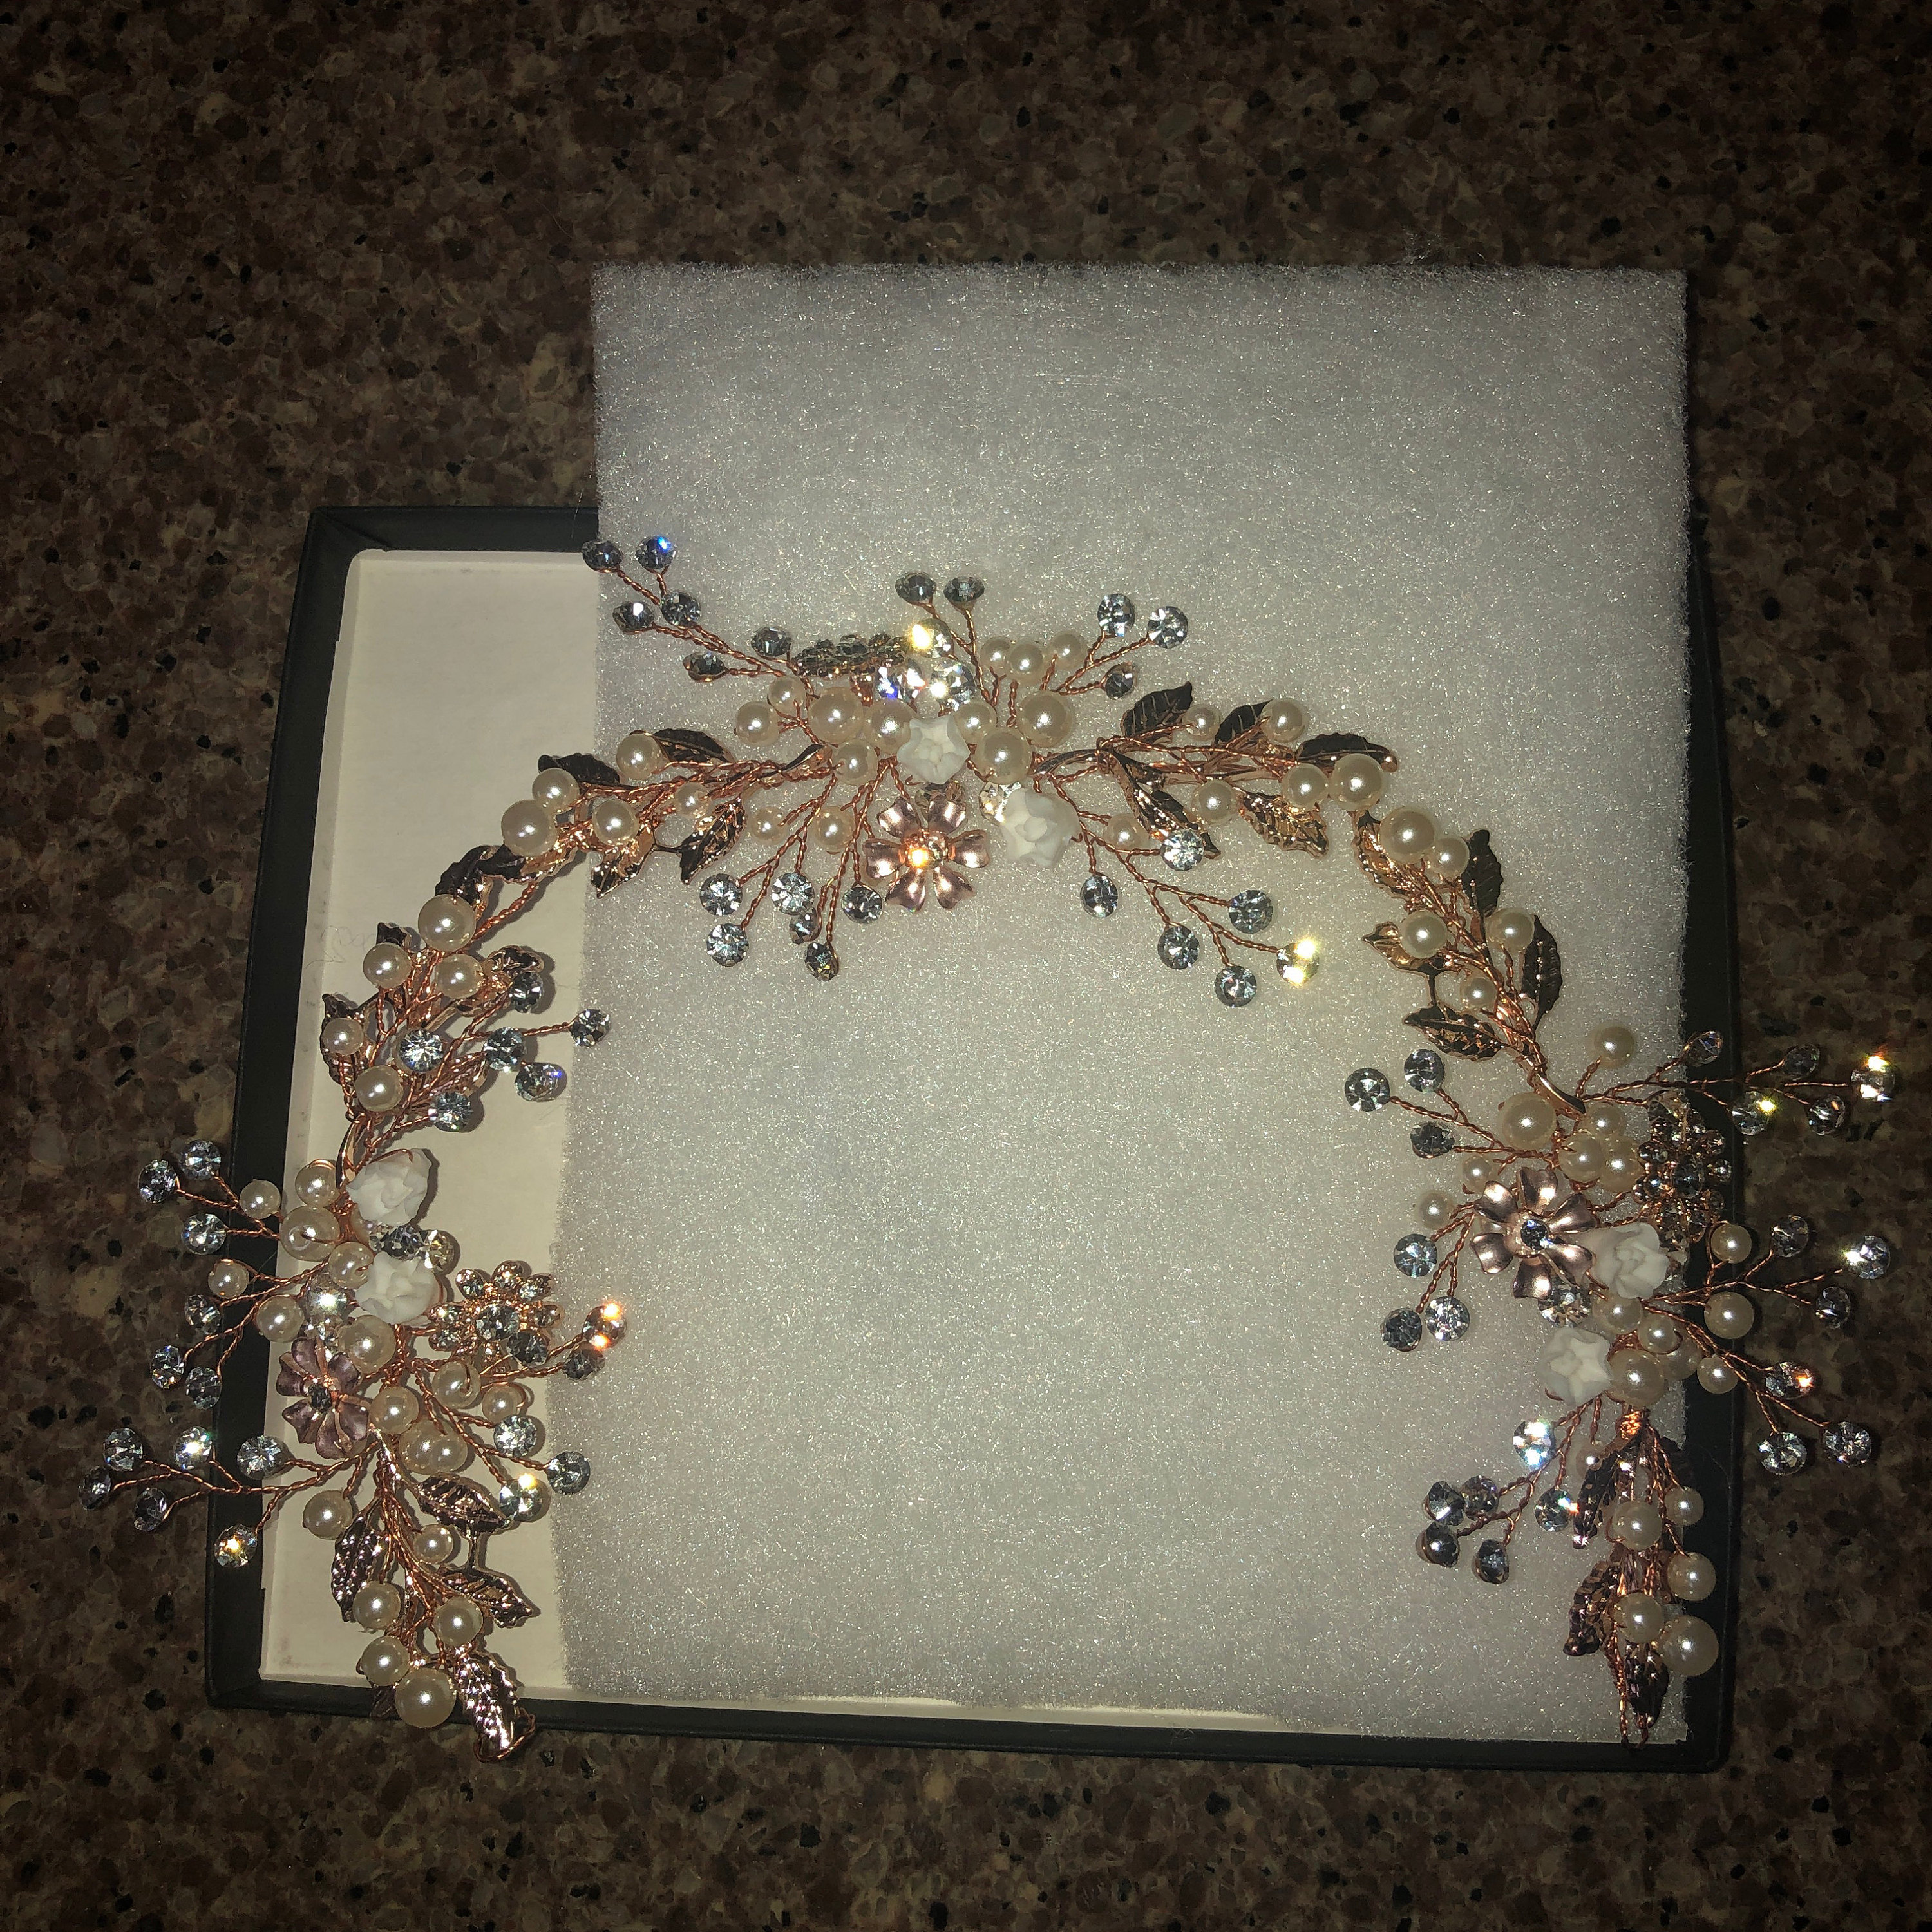 kelleybrown213 added a photo of their purchase